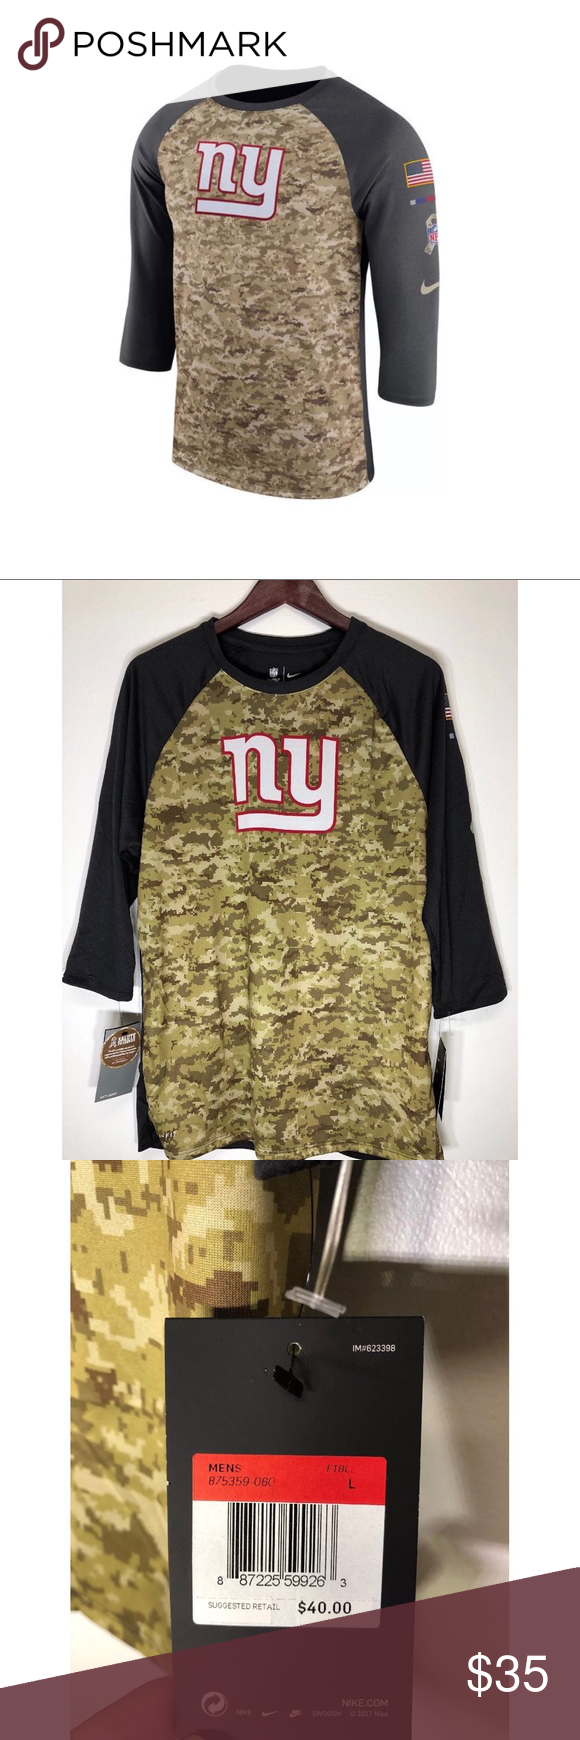 """NY GIANTS NFL SALUTE TO SERVICE 3/4 SLEEVE SHIRT L NY GIANTS NFL 2017 SALUTE TO SERVICE  3/4 SLEEVE SHIRT """"SOLD OUT"""" Large  NWT Nike Shirts Tees - Short Sleeve #salutetoservice NY GIANTS NFL SALUTE TO SERVICE 3/4 SLEEVE SHIRT L NY GIANTS NFL 2017 SALUTE TO SERVICE  3/4 SLEEVE SHIRT """"SOLD OUT"""" Large  NWT Nike Shirts Tees - Short Sleeve #salutetoservice NY GIANTS NFL SALUTE TO SERVICE 3/4 SLEEVE SHIRT L NY GIANTS NFL 2017 SALUTE TO SERVICE  3/4 SLEEVE SHIRT """"SOLD OUT"""" Large  NWT Nike S #salutetoservice"""